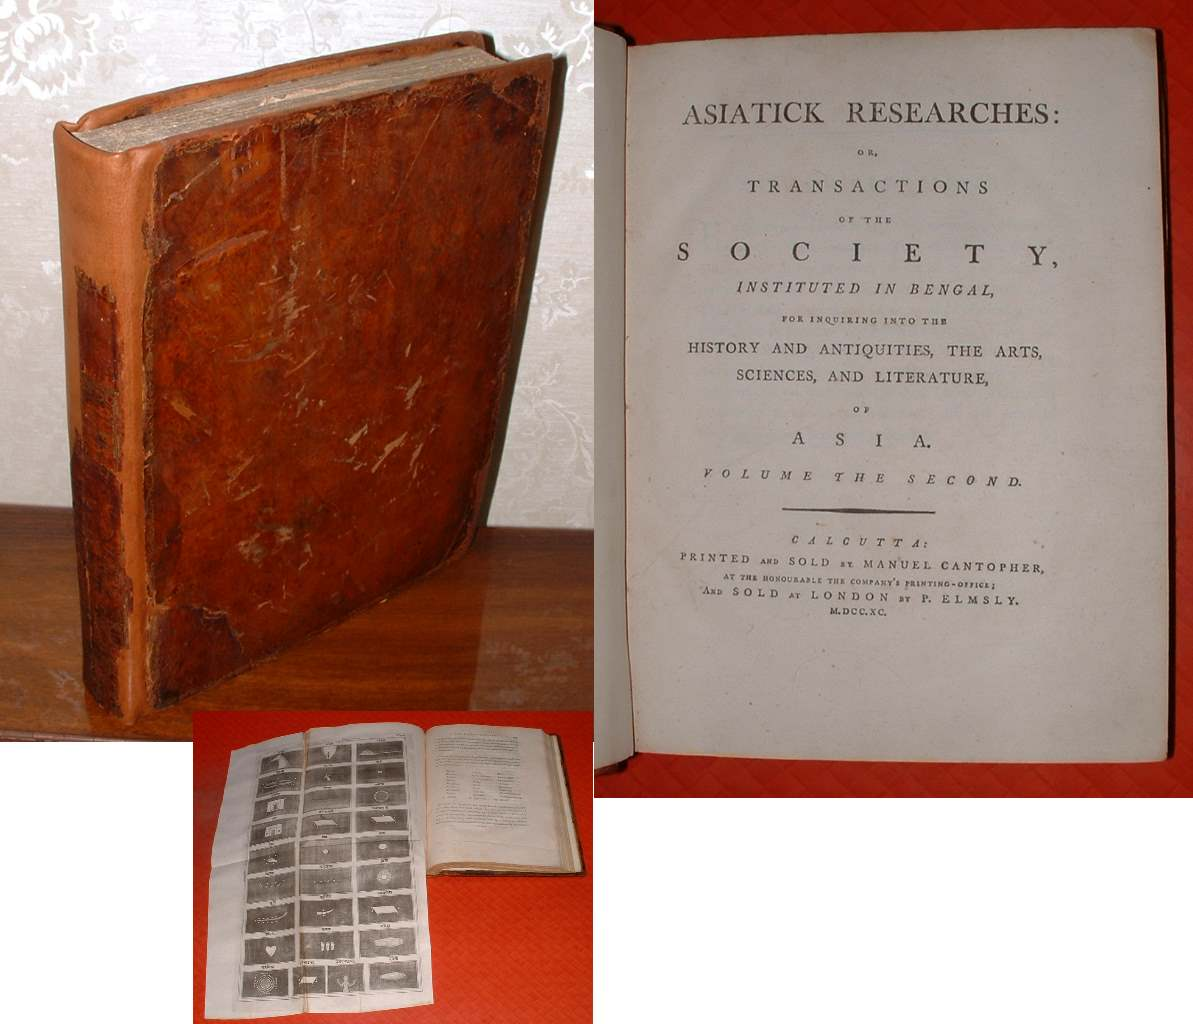 Asiatick Researches: Or, Transactions of the Society, Instituted in Bengal, for Inquiring  into the History and Antiquities, the Arts, Sciences, and Literature, of Asia. Volume the Second.